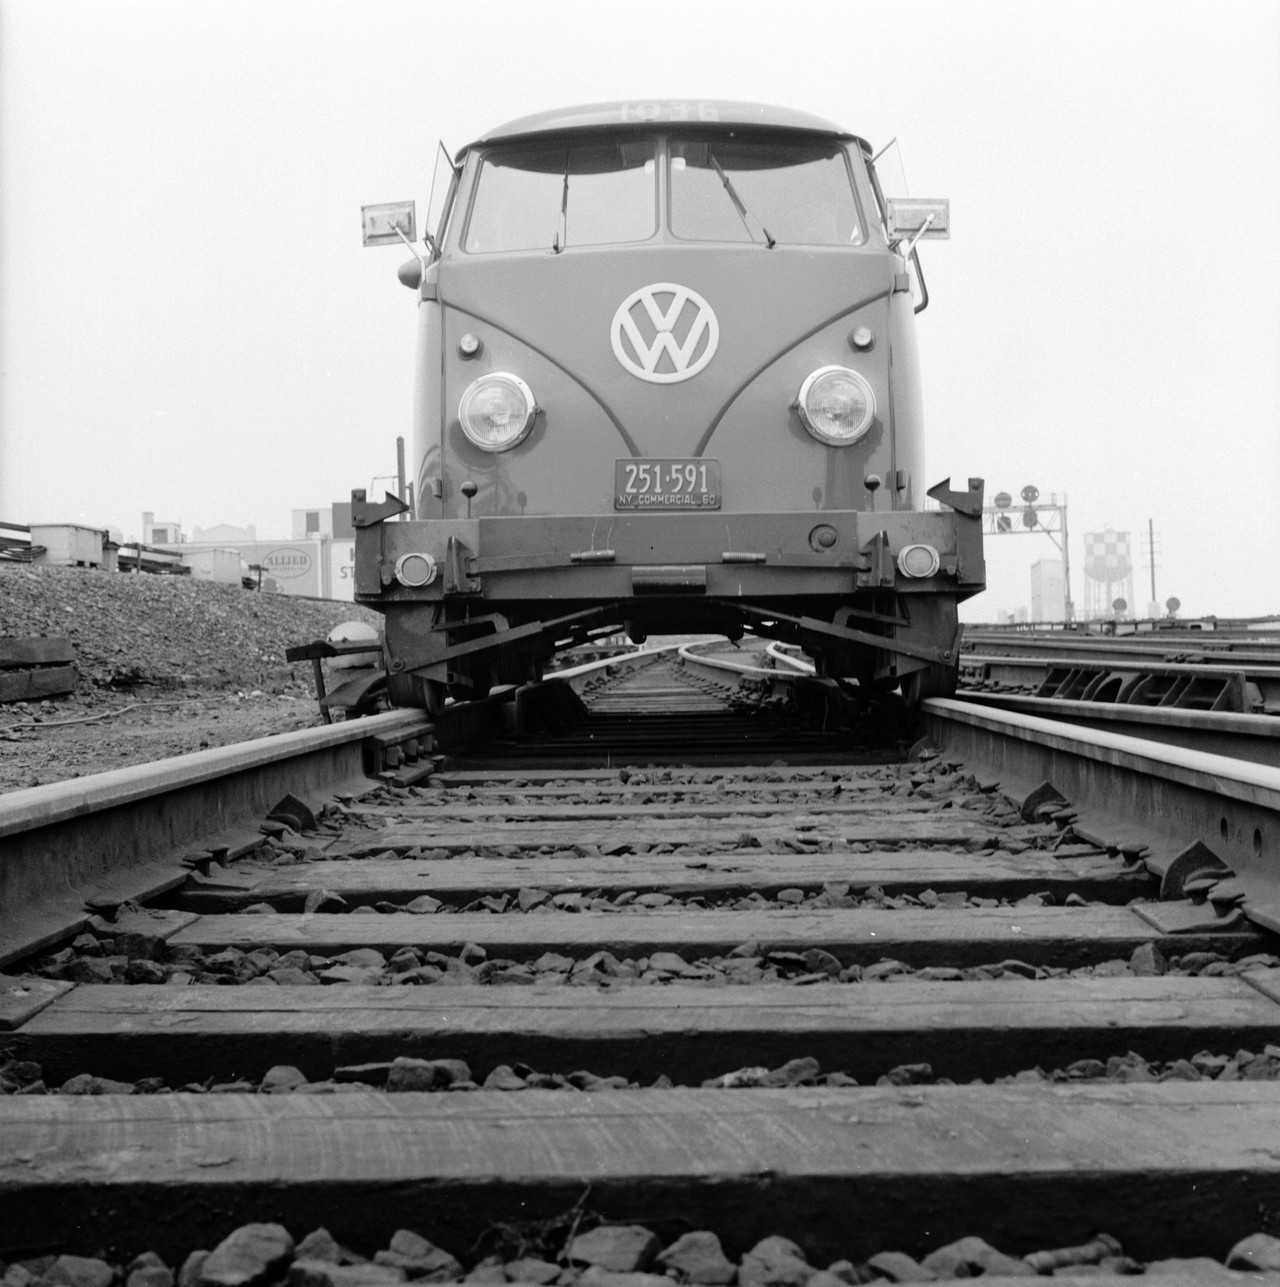 The new Volkswagen traveling along the tracks of the Long Island railroad, 1956.